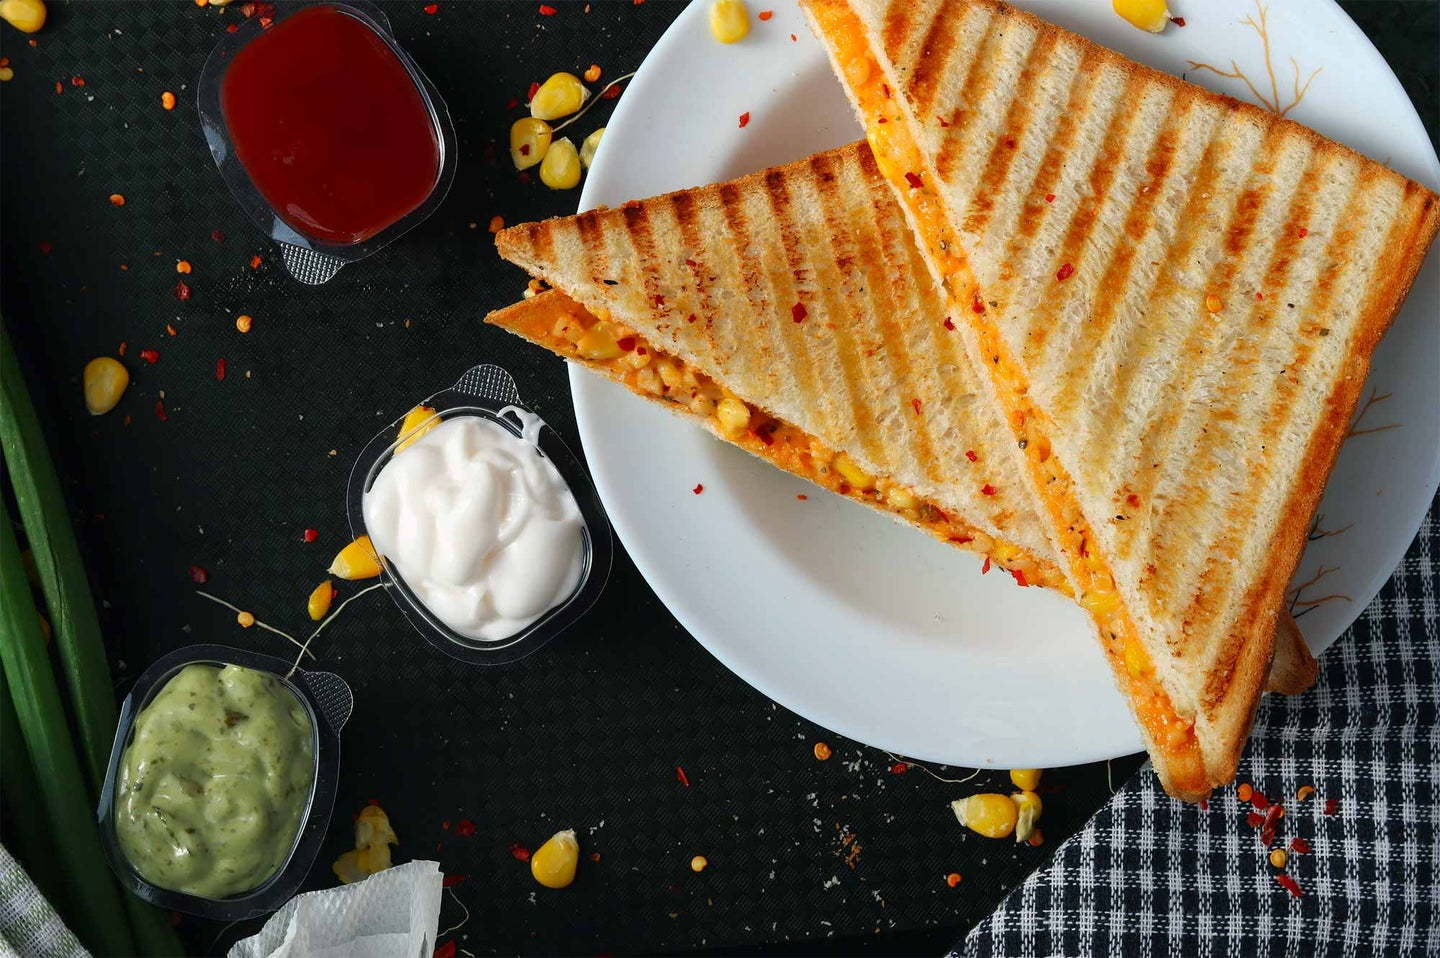 Pressed grilled cheese sandwich with grill marks